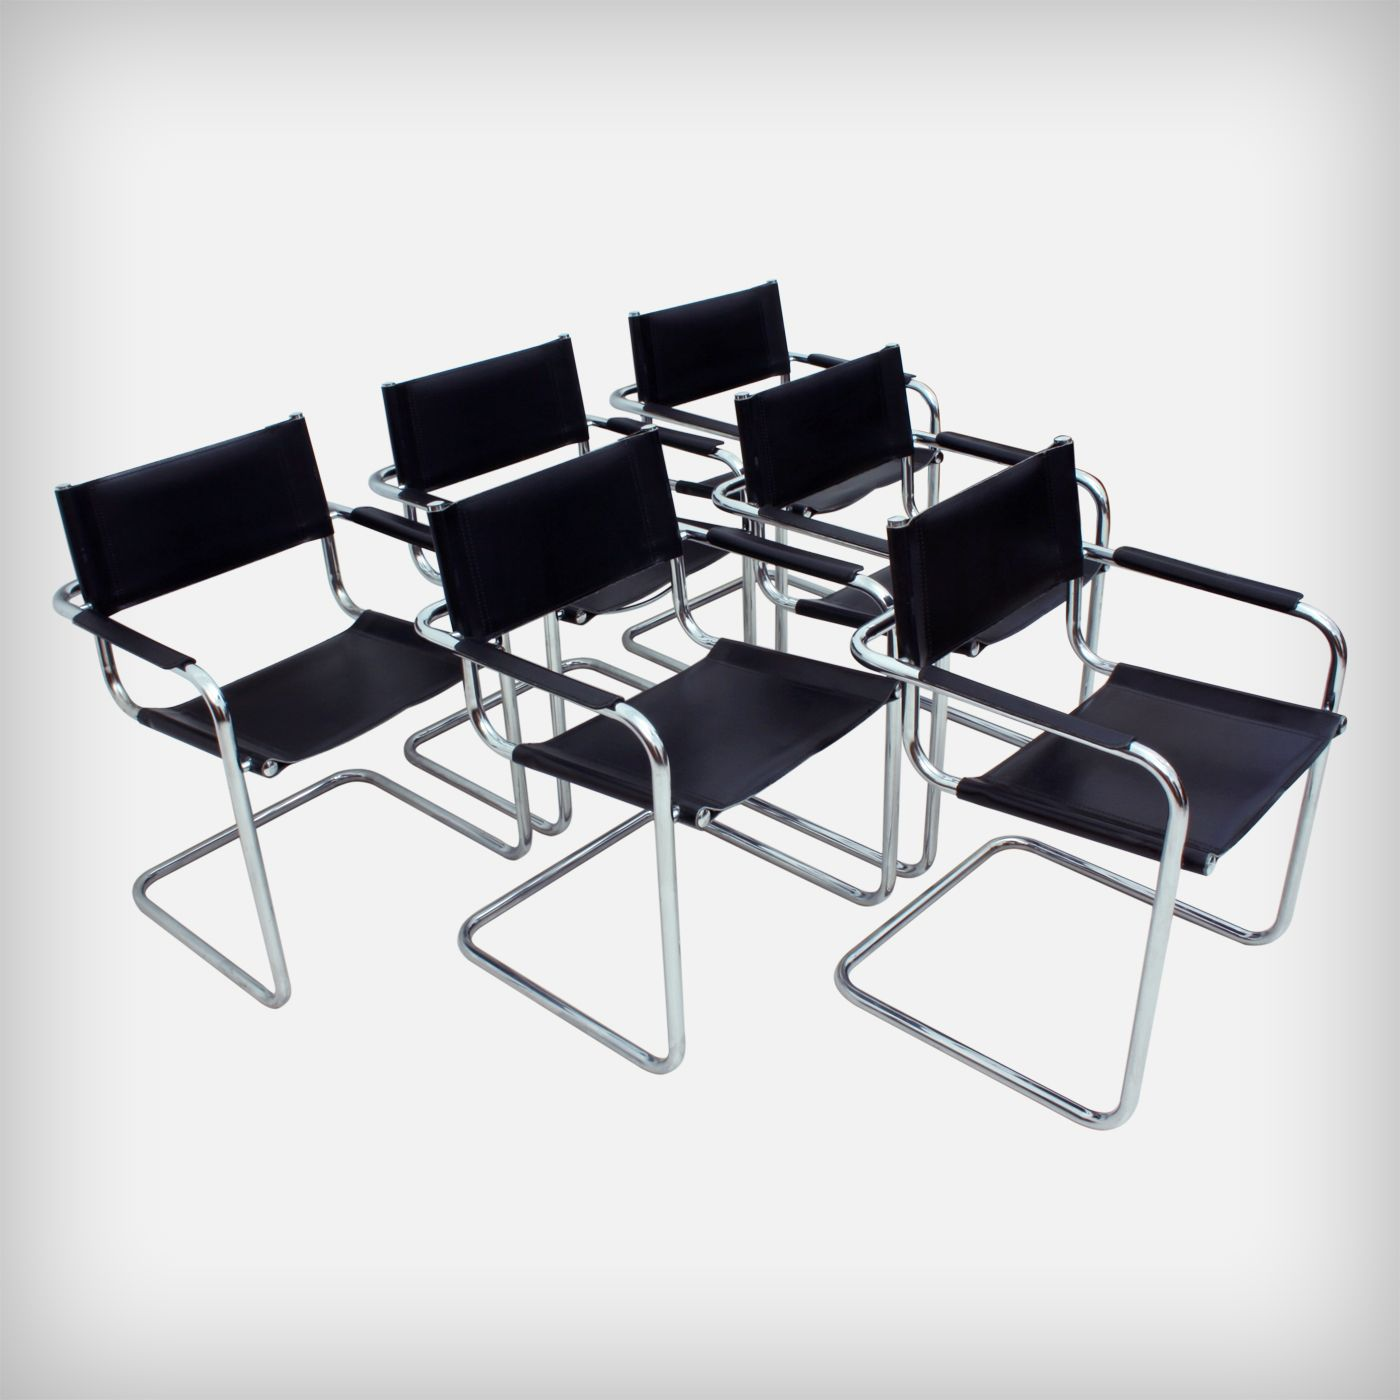 Set Of 6 Dining Or Office Chairs • MG5 AR by Centra Studi Matteo Grassi    Made in Italy   MID-CENTURY furniture, art & accessories :: We ship worldwide! www.goodoldvintage.de